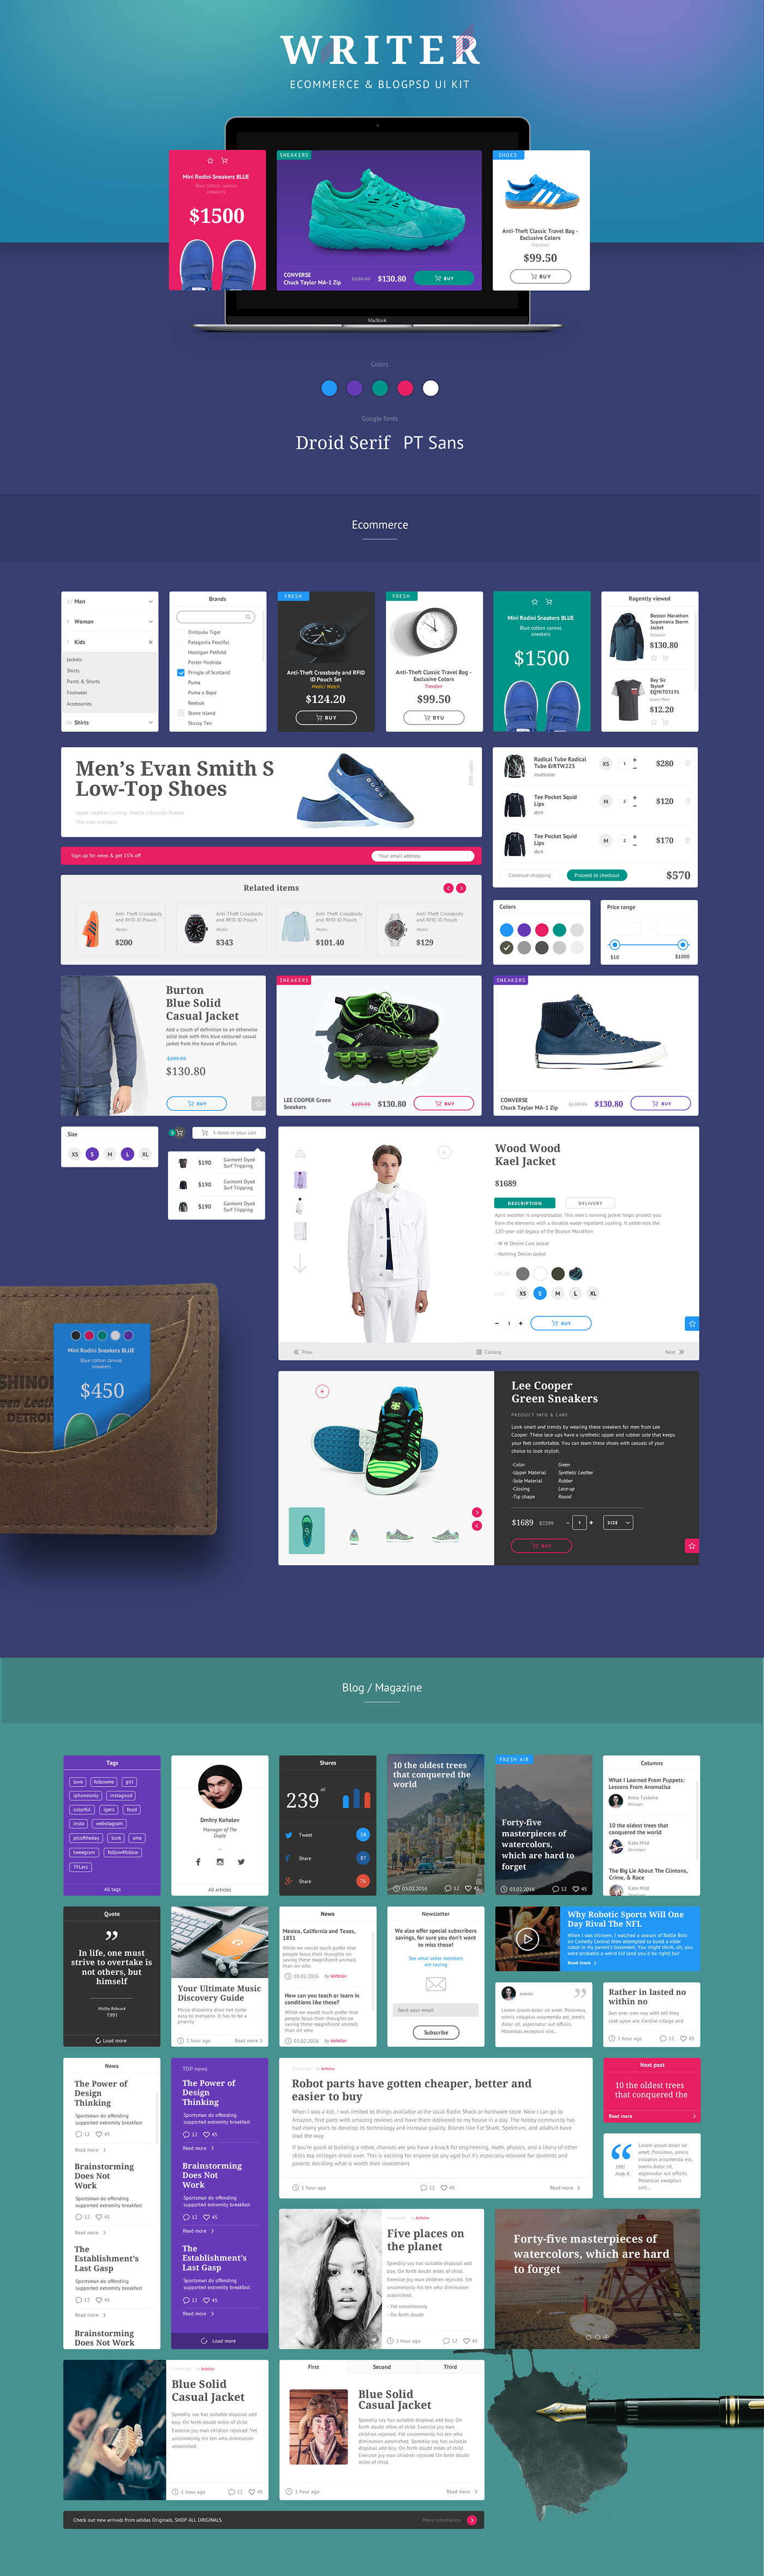 FOR DOWLOAD WRITER UI KIT: https://ui8.net/products/writer-ui-kitWriter UI is ecommerce and blog PSD Template is a uniquely ecommerce and news website template designed in Photoshop. Dark and light versions. PSD files are well organized and named accor…